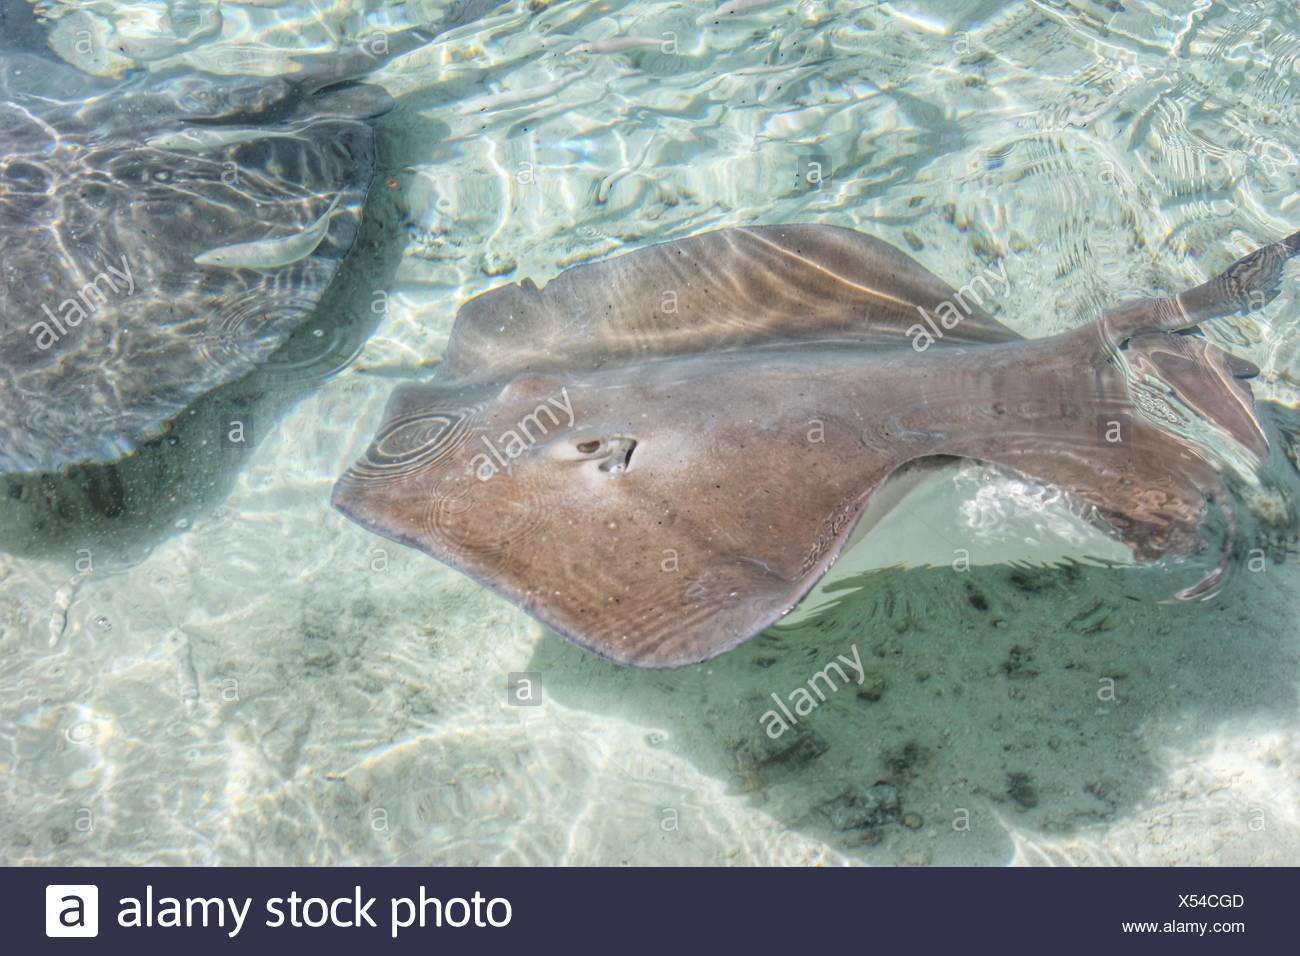 High Angle View Of Stingrays Swimming In Sea - Stock Image